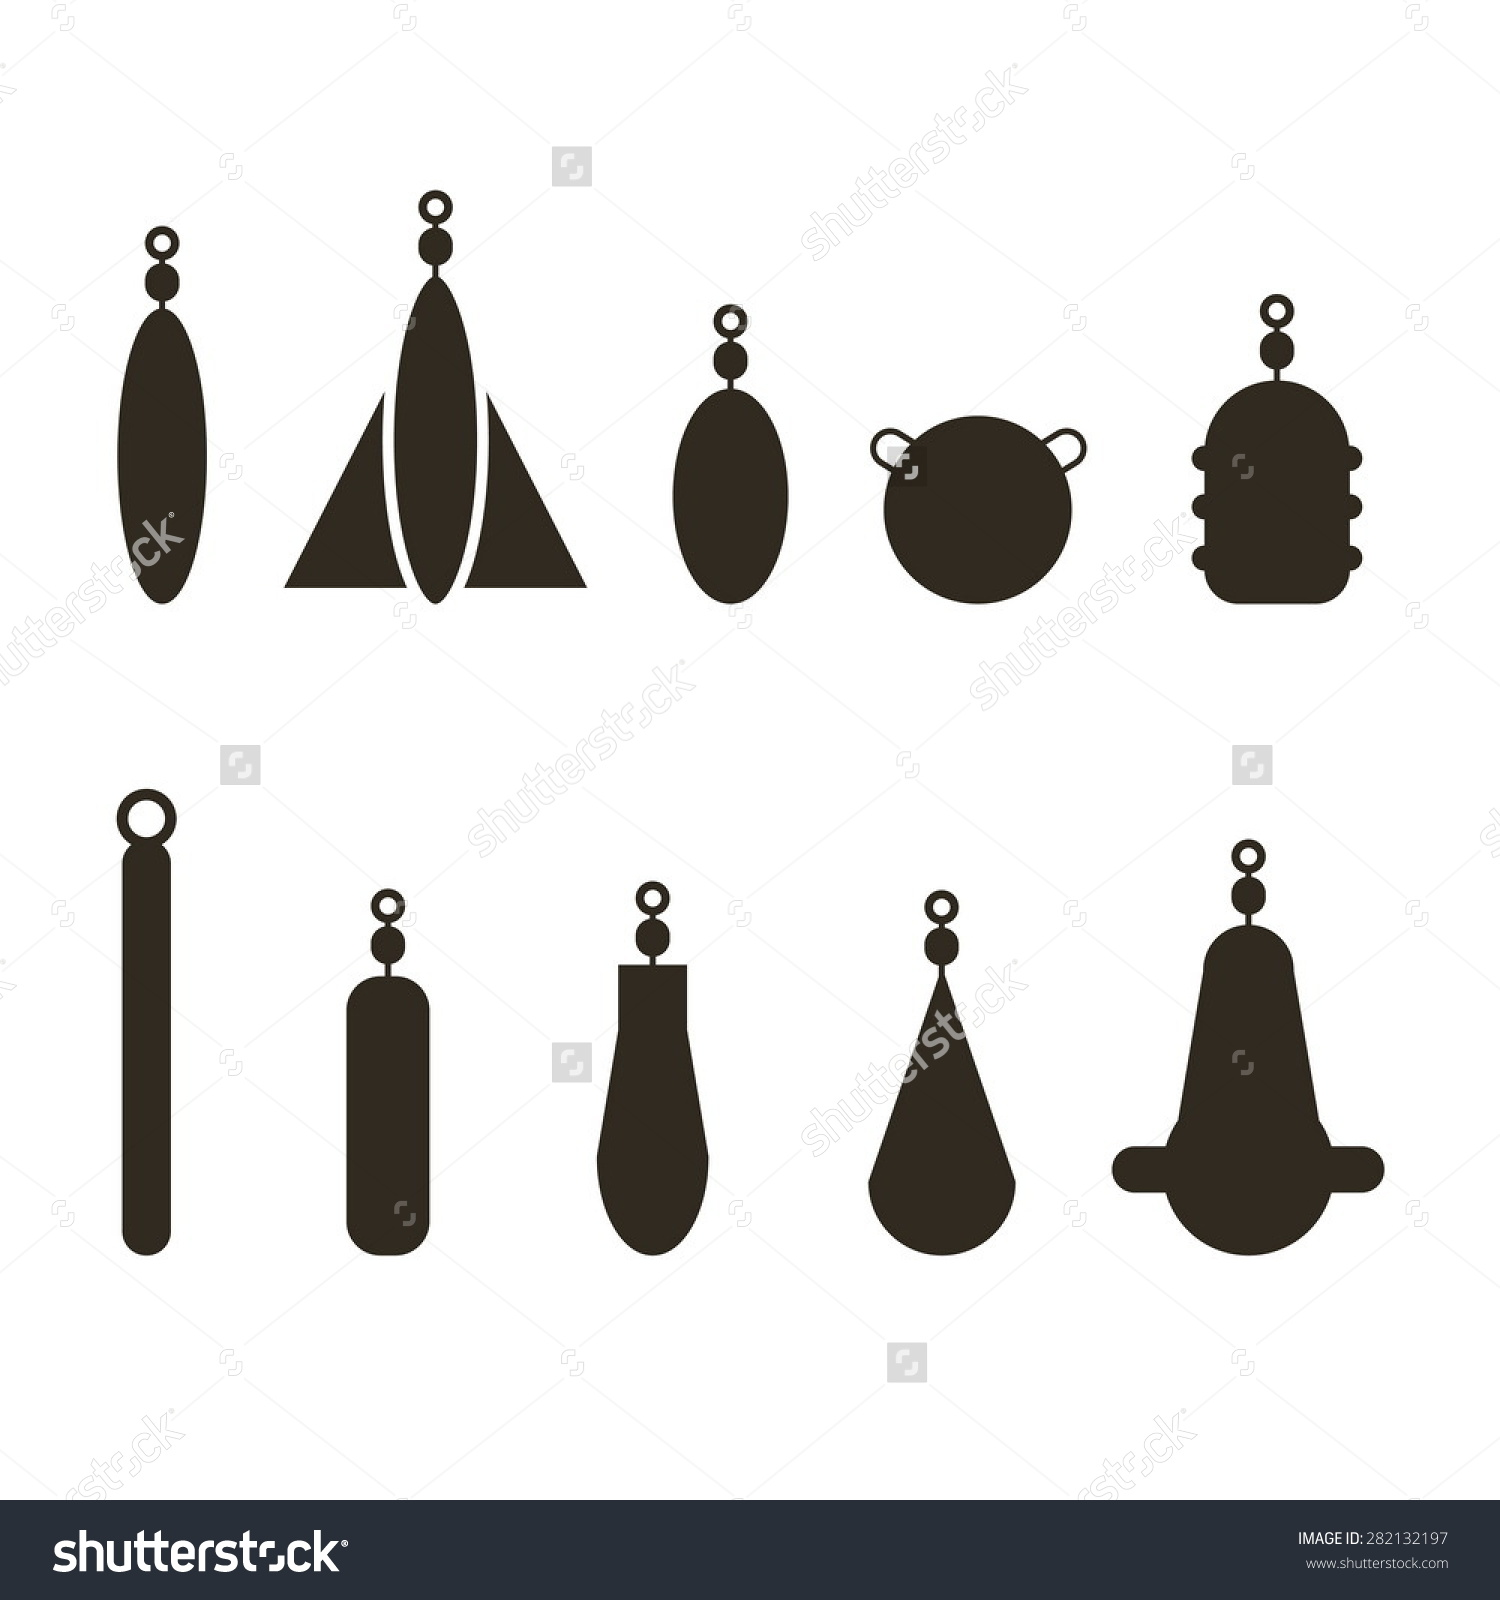 Fishing Sinker Stock Vector Illustration 282132197 : Shutterstock.